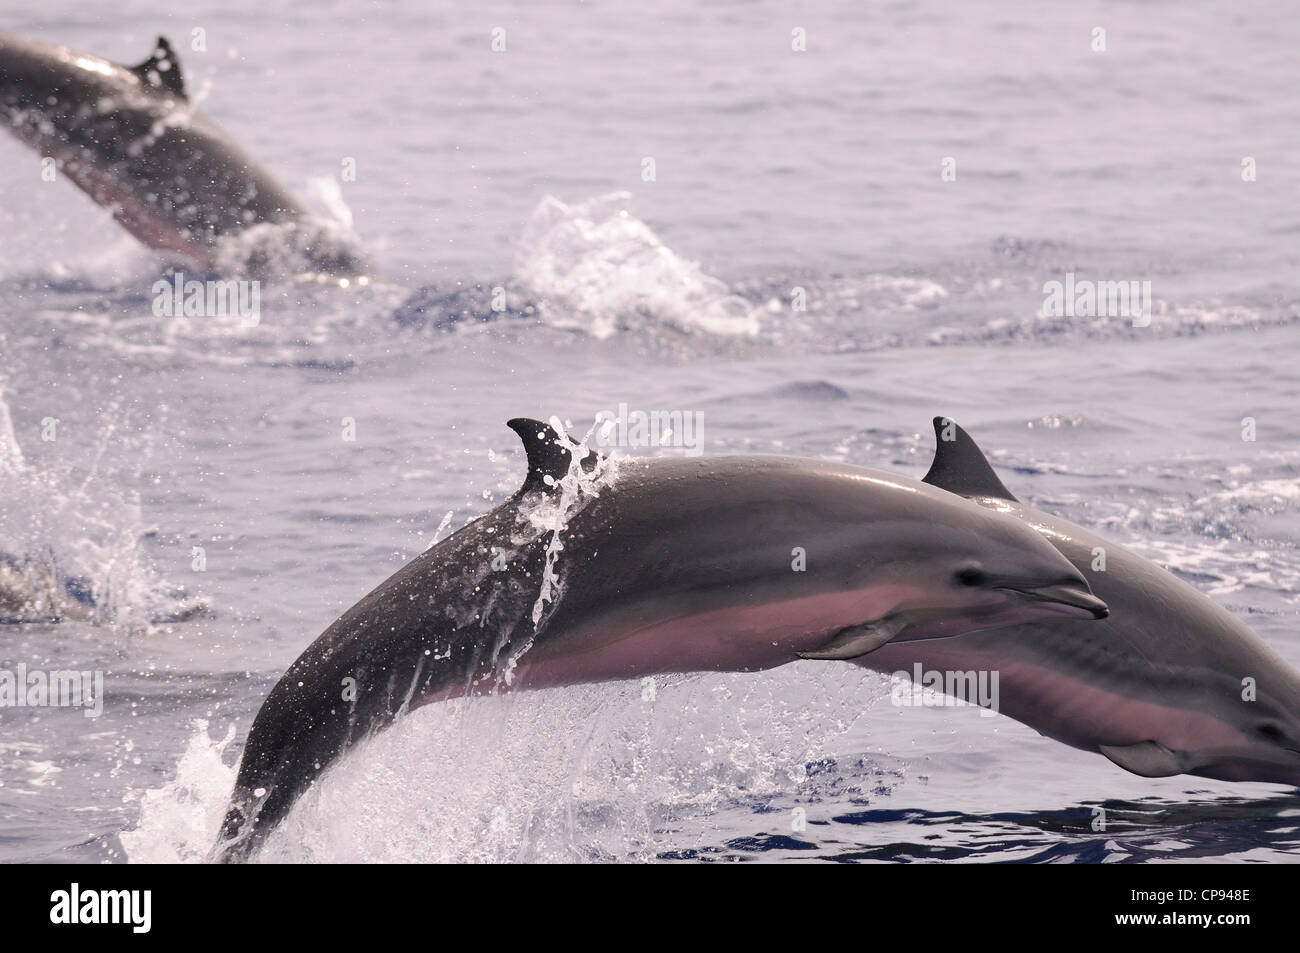 Fraser's Dolphin (Lagenodelphis hosei) or Sarawak Dolphin, leaping out of the sea, The Maldives - Stock Image